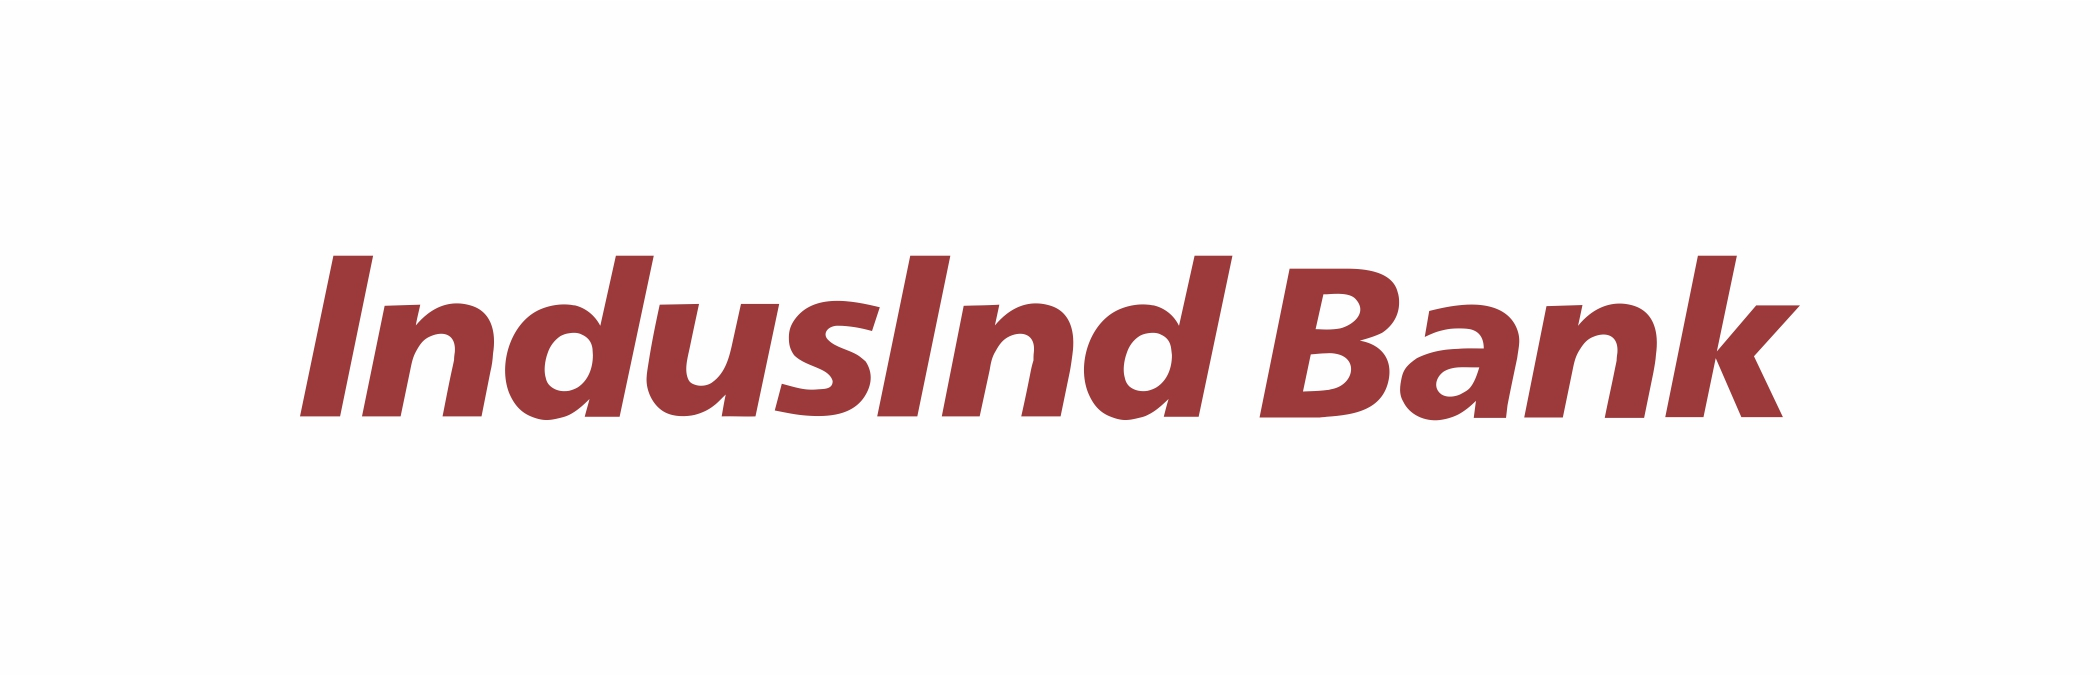 IndusInd Bank,CANAL COLONY - logo